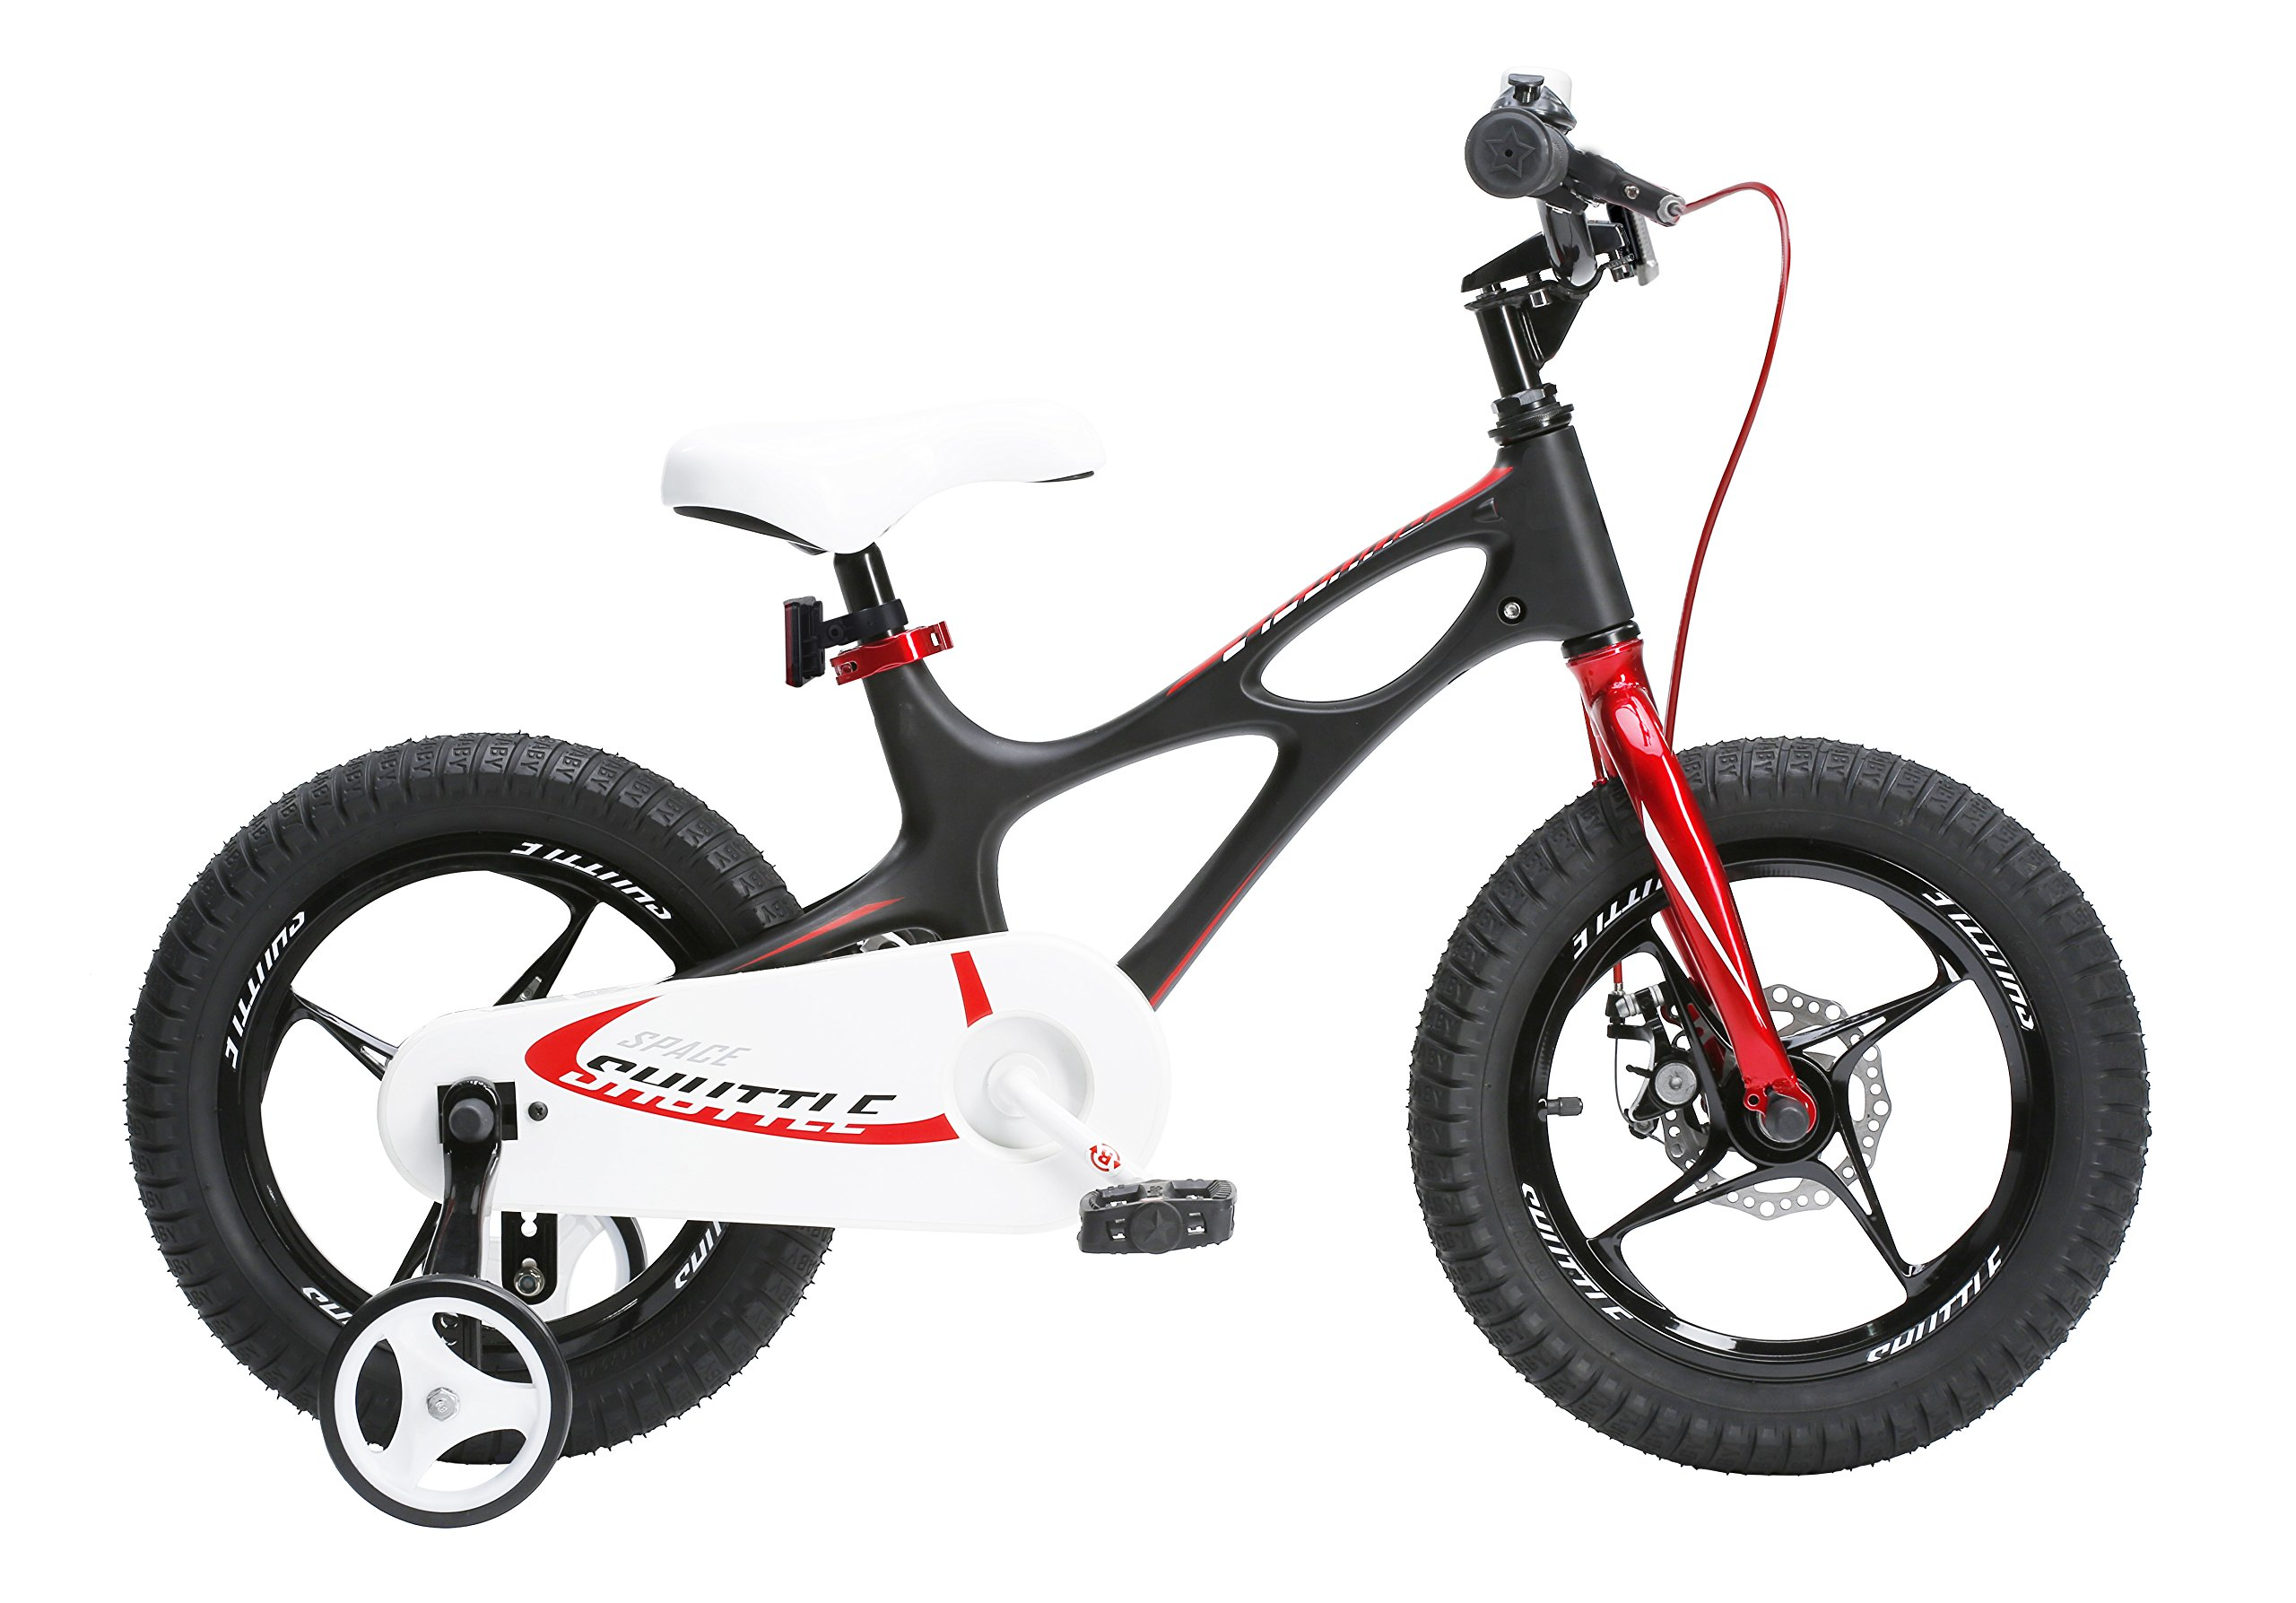 Royalbaby RB16-22K newly-launched Space Shuttle kids bike, lightweight magnesium frame bike for boys and girls, 14 inch or 16 inch bike with Magnesium training wheels for age 3-6 by Royalbaby